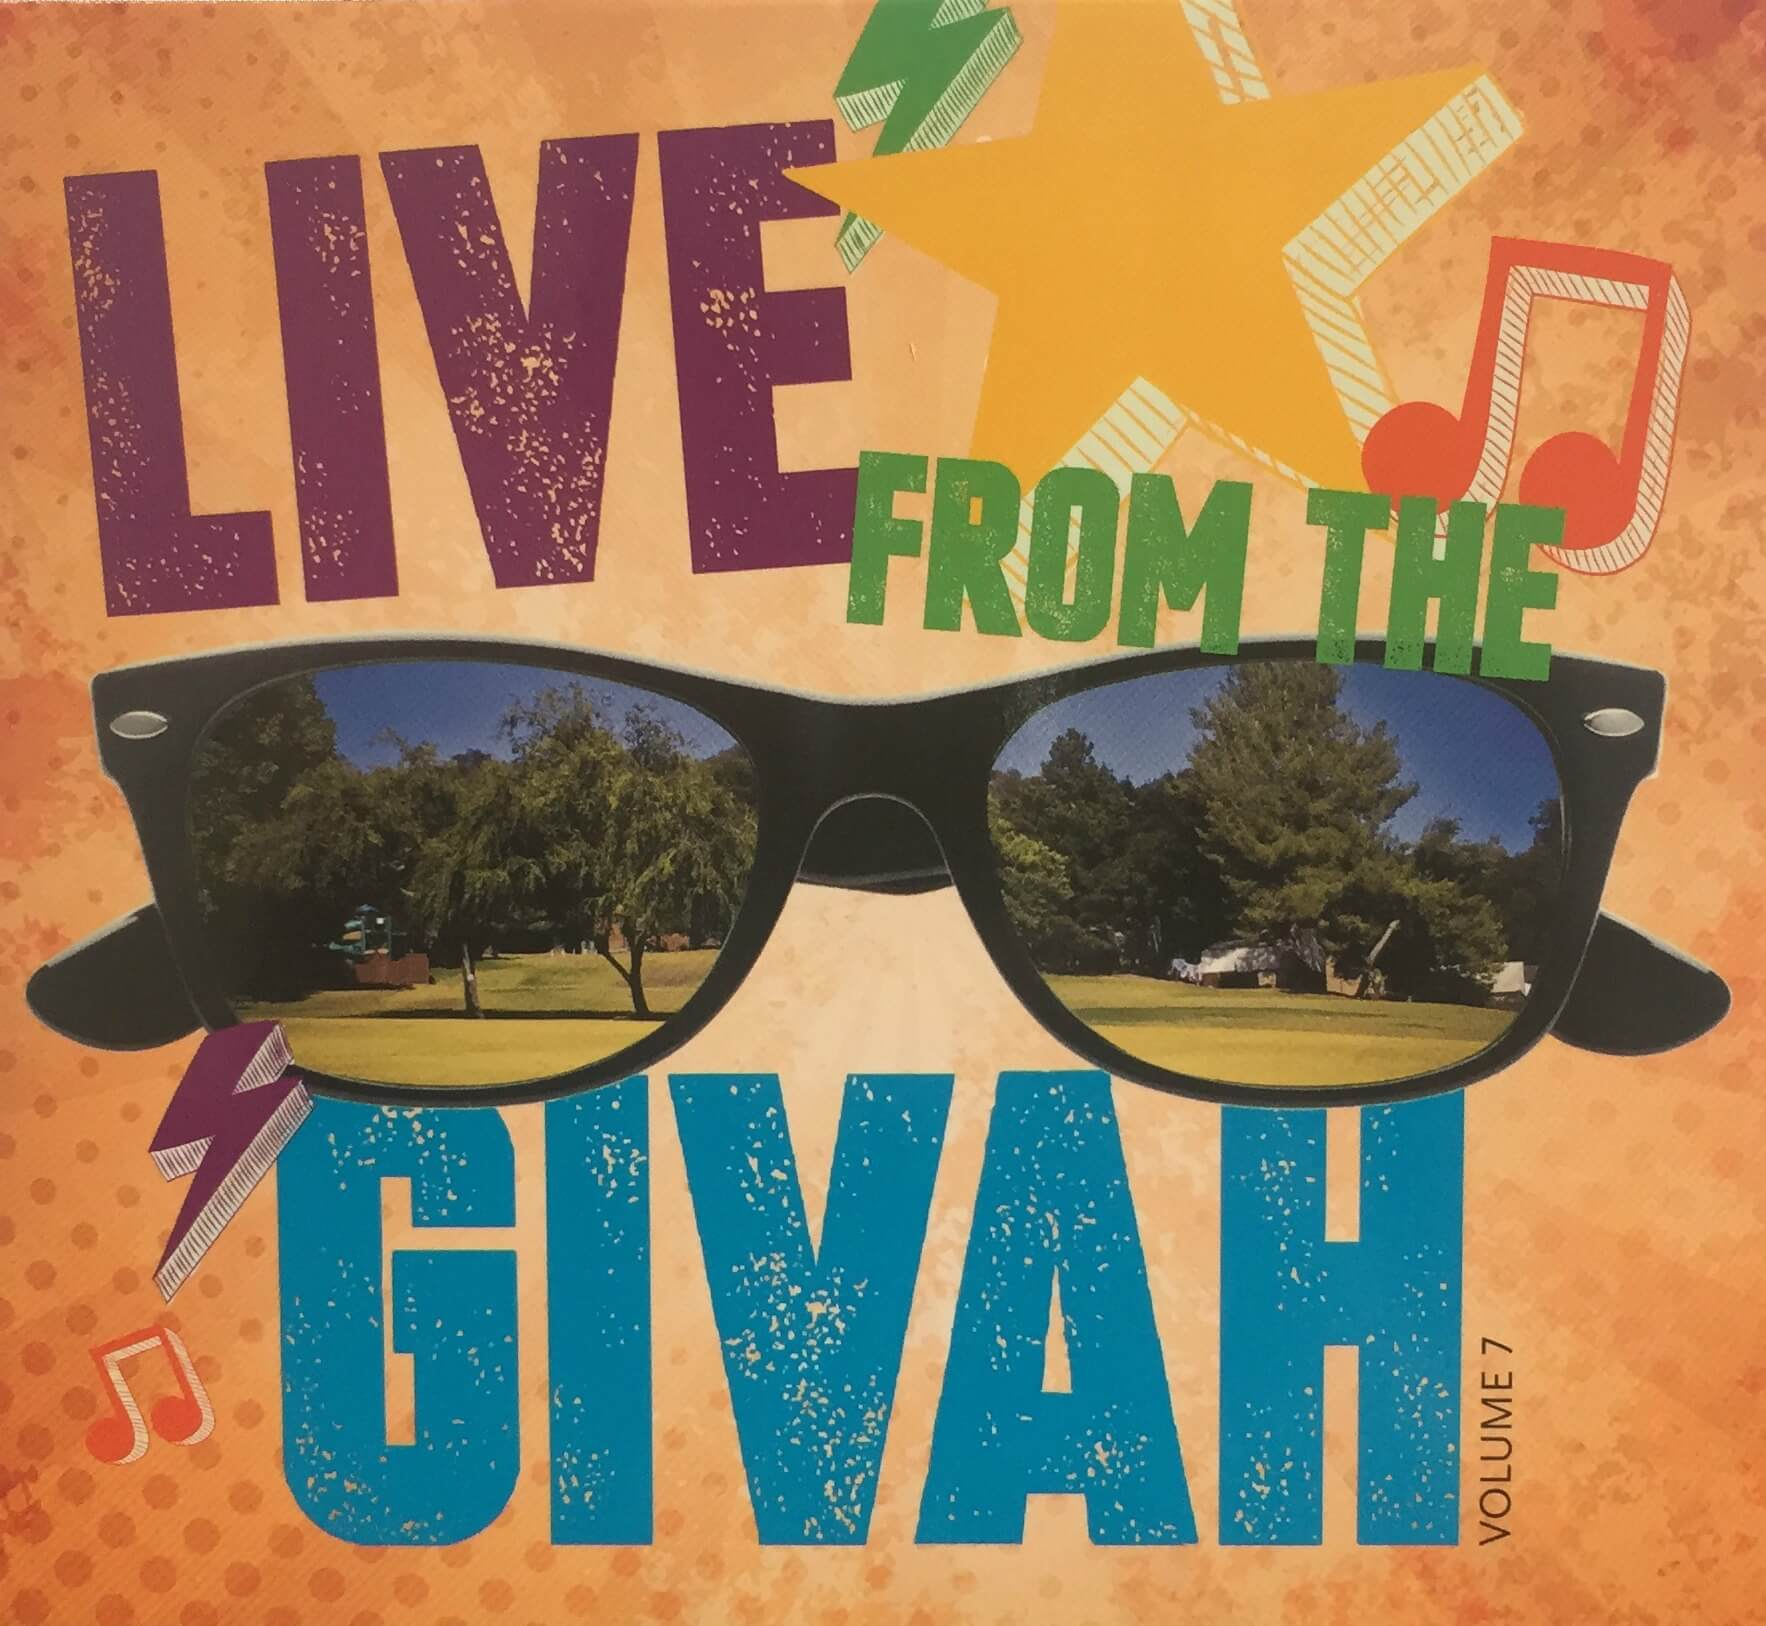 Live from the Givah, Volume VII